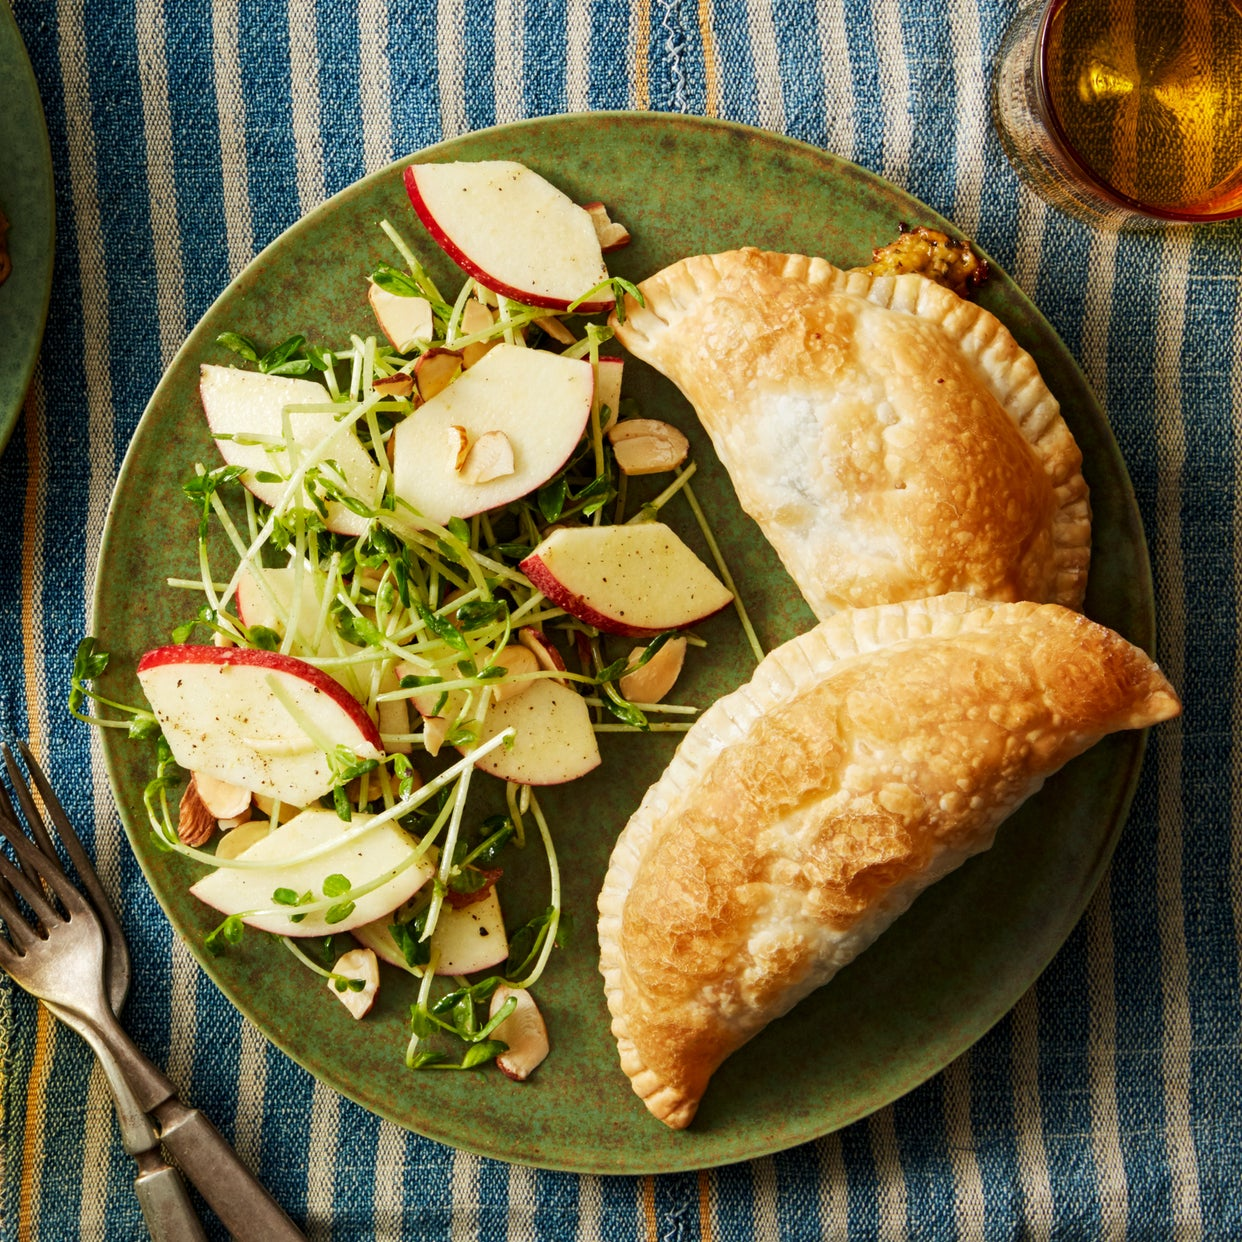 Broccoli & Cheddar Turnovers with Pea Green & Apple Salad